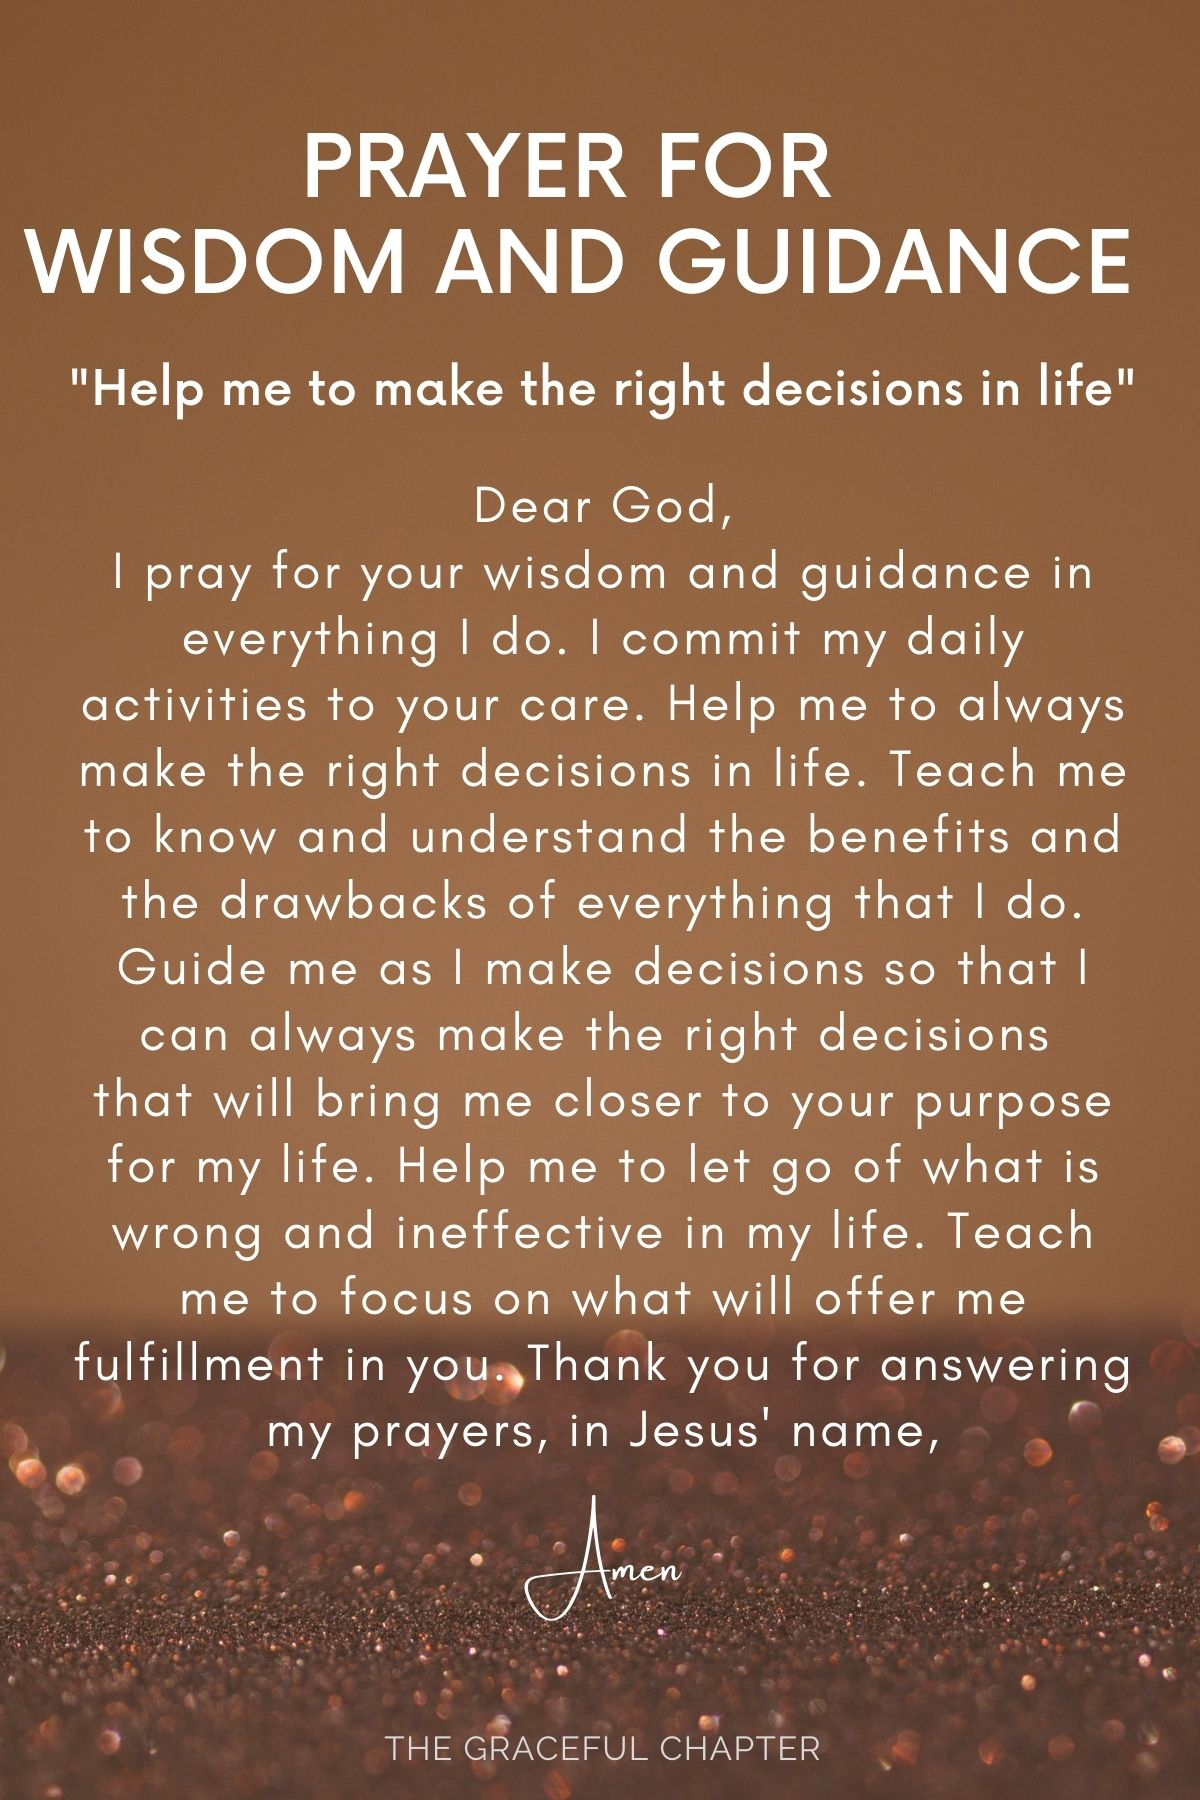 Help me to make the right decisions in life